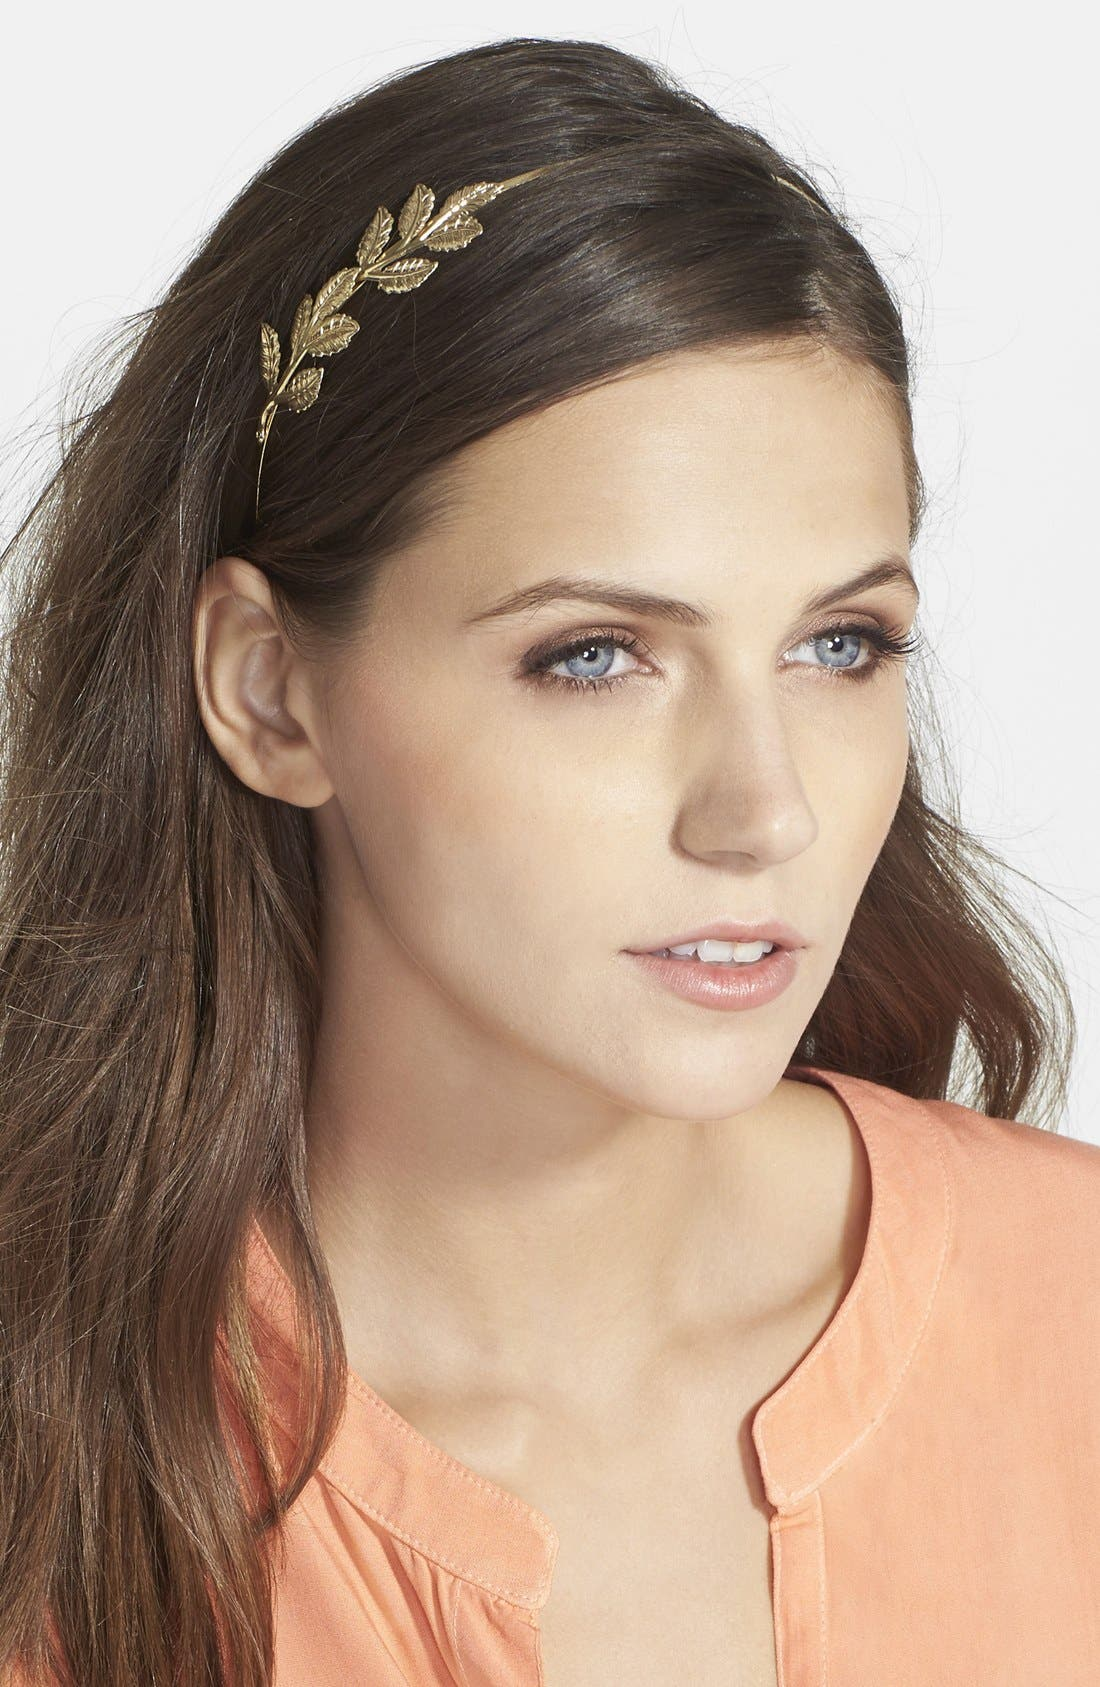 Alternate Image 1 Selected - Berry 'Pretty Leaf' Headband